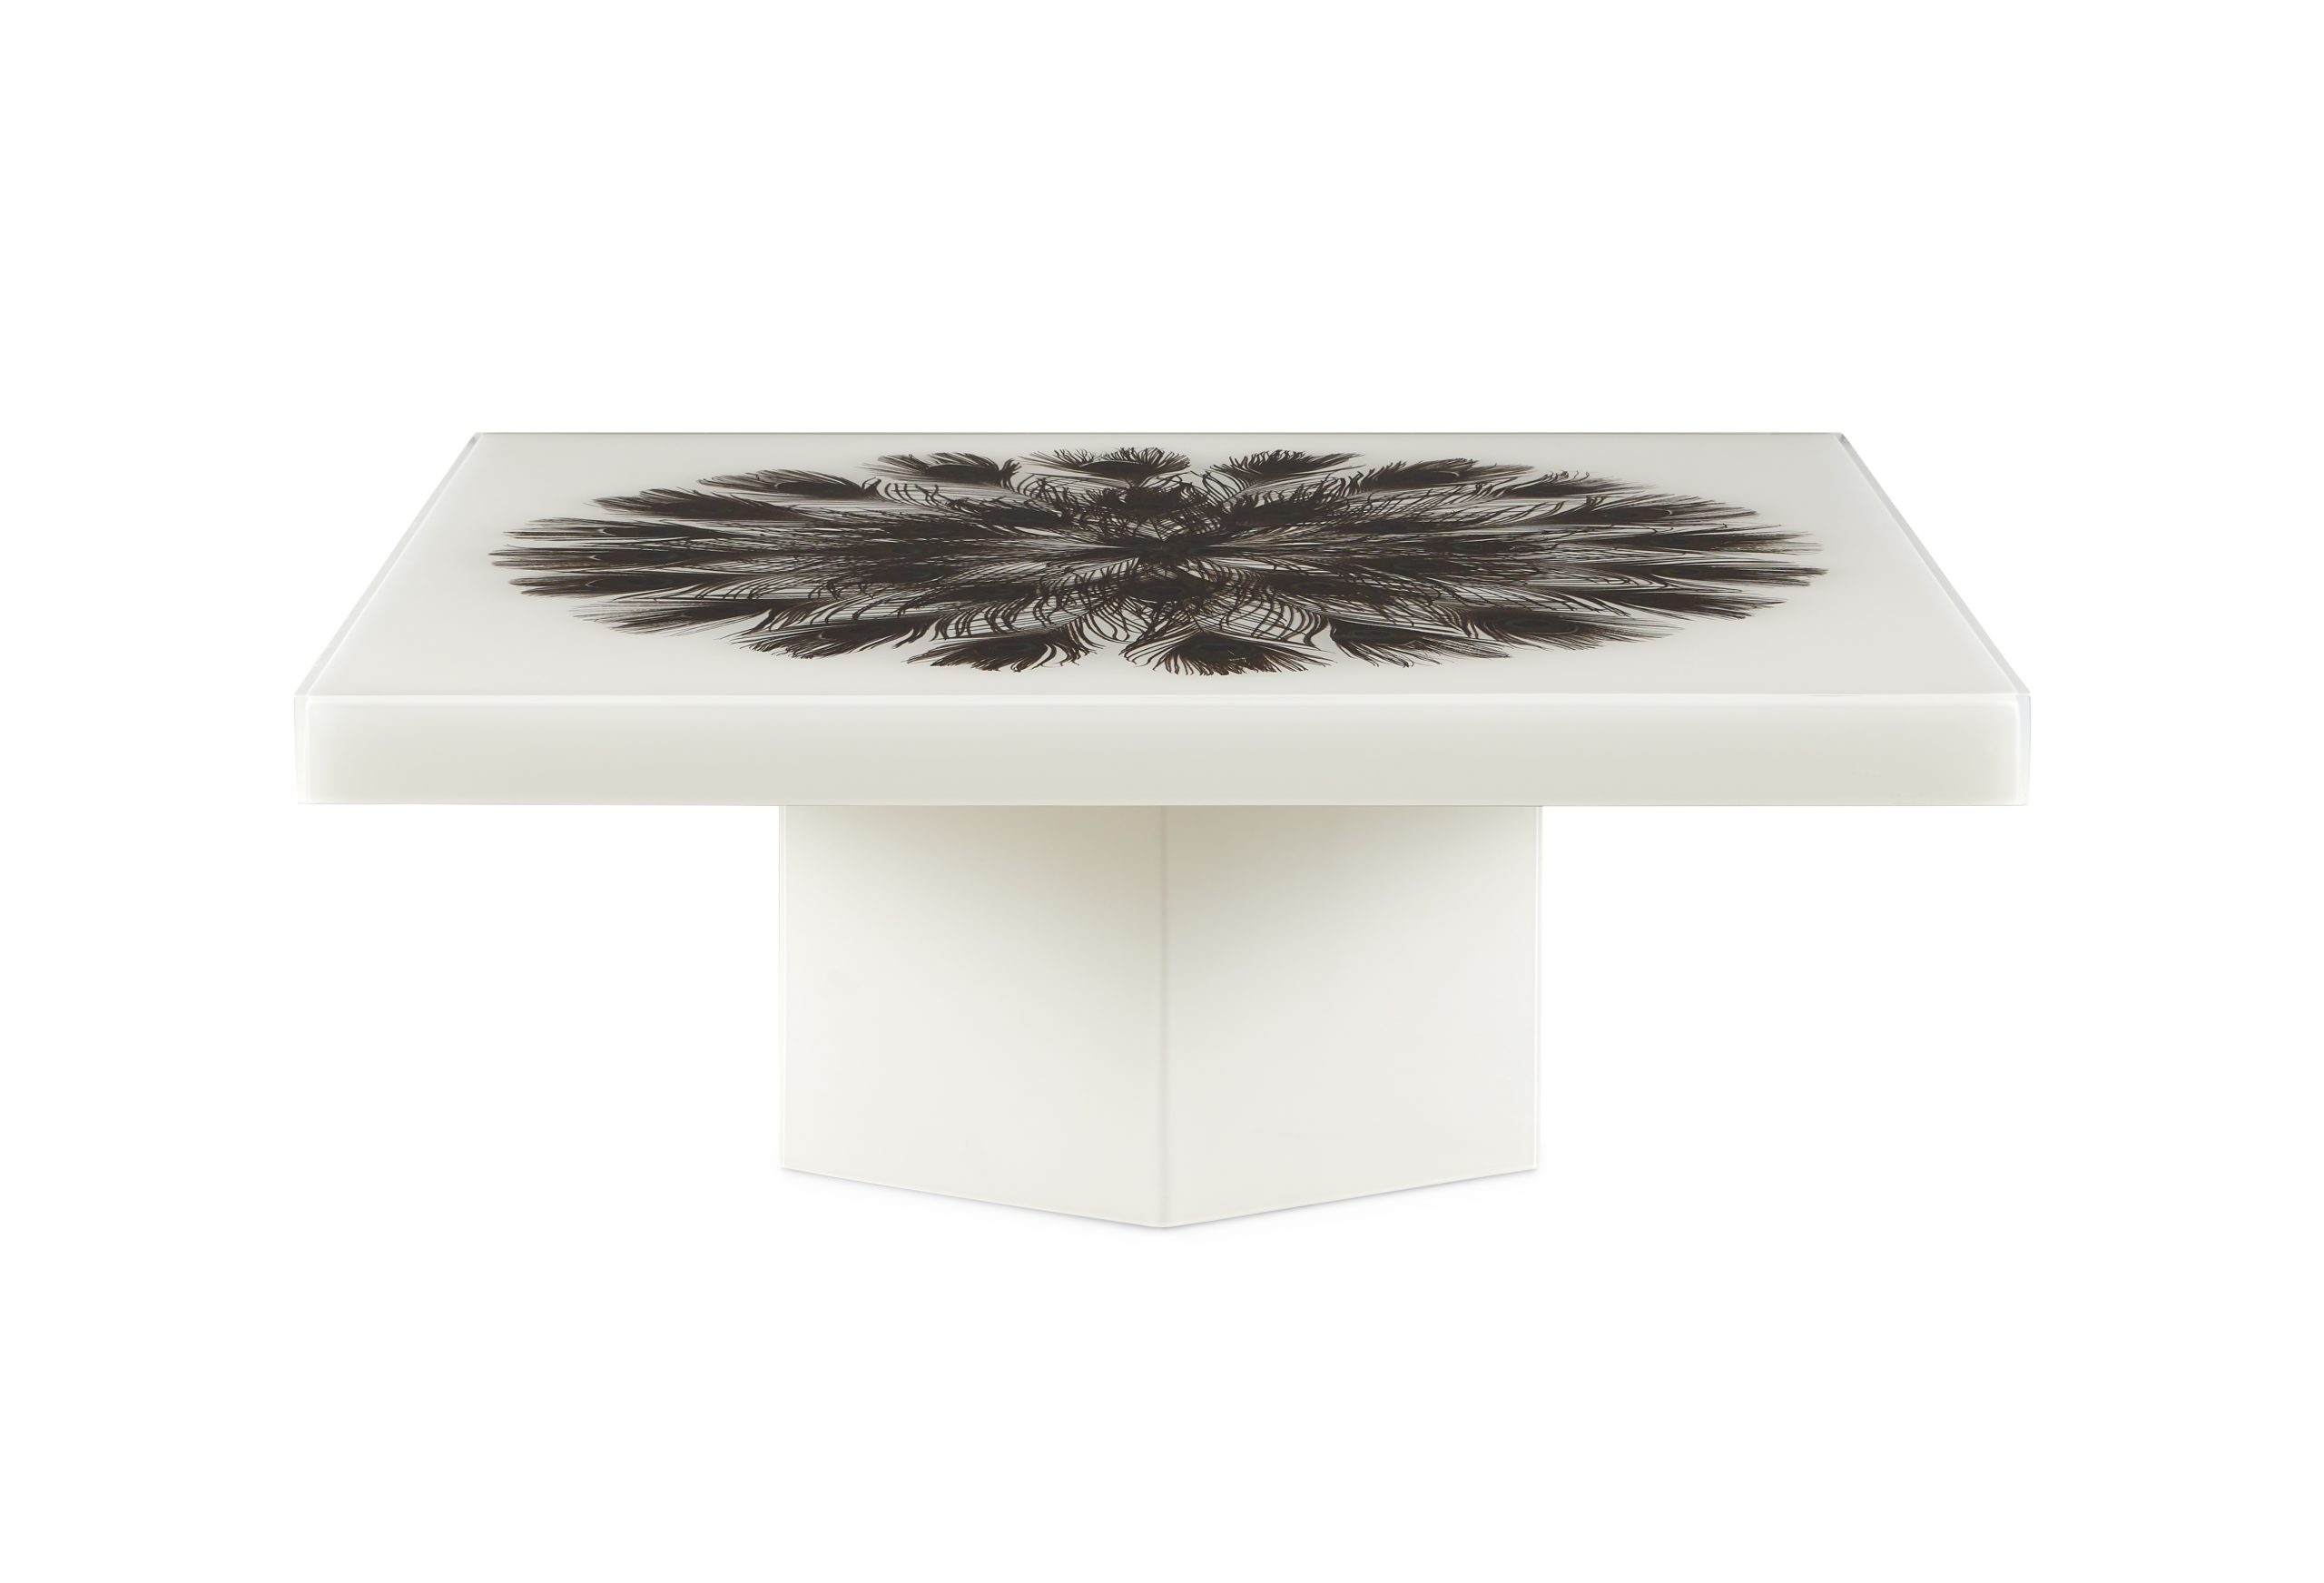 Baker_products_WNWN_peacock_square_cocktail_table_BAA3261_FRONT-scaled-2